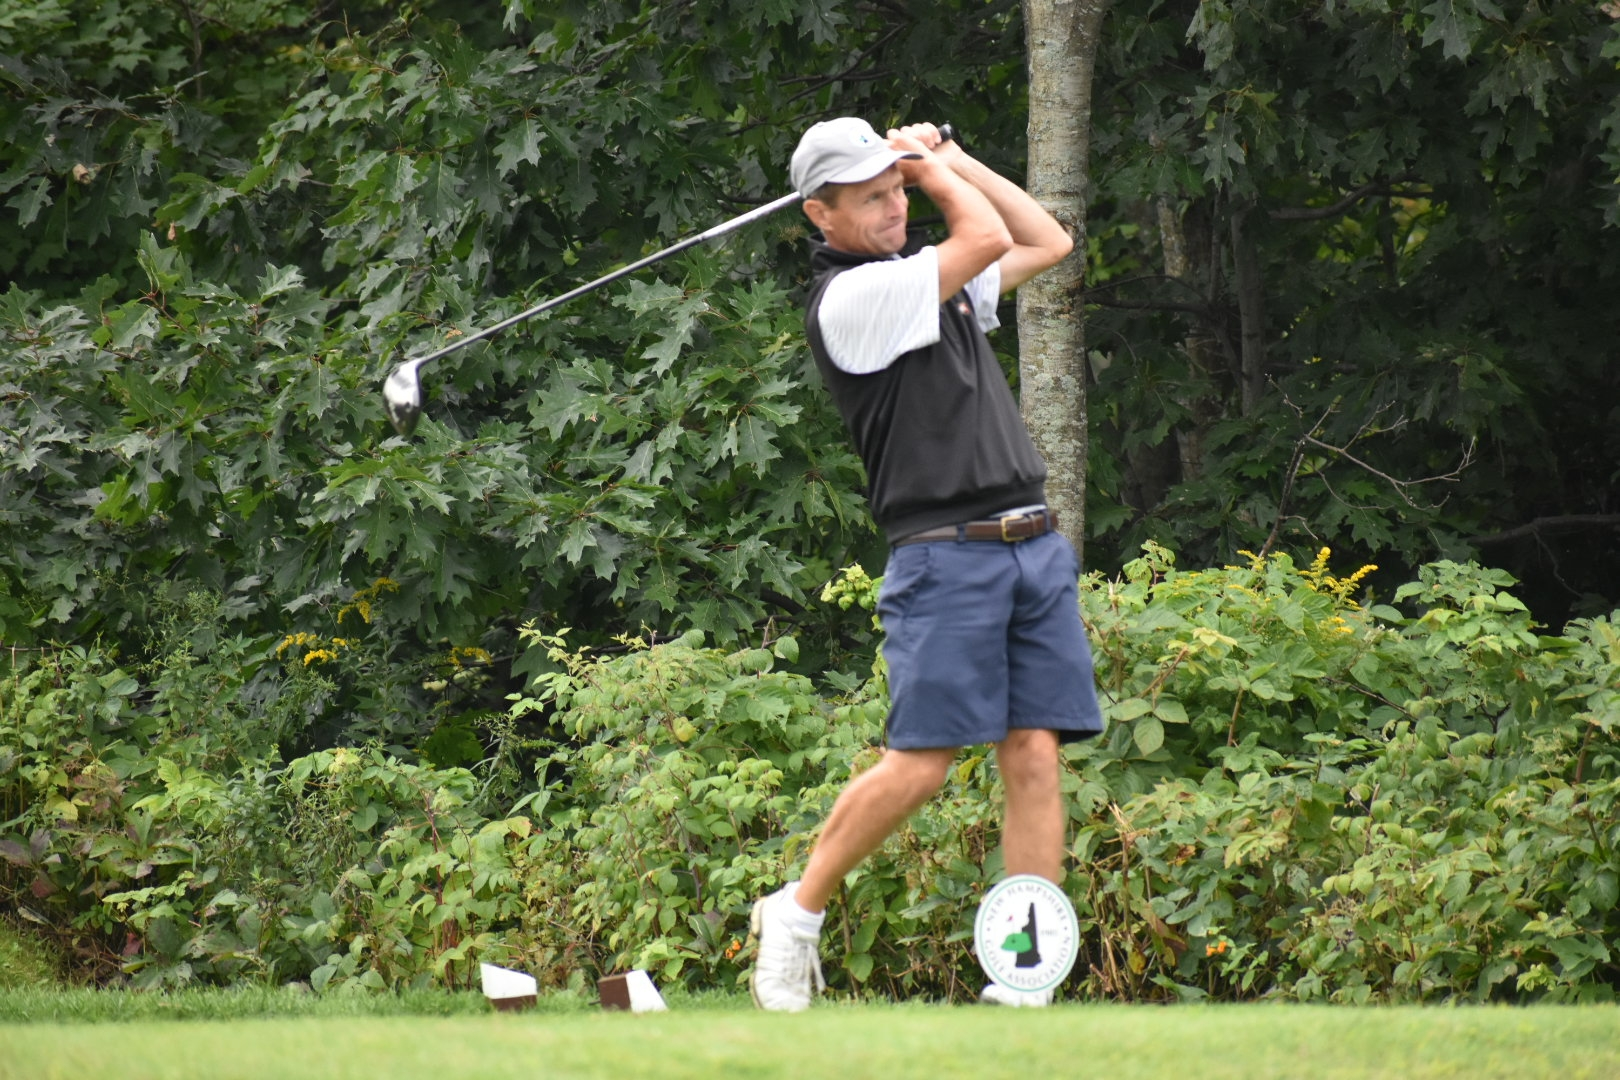 The Pete's Take the Lead, Desjardins-Beaulieu Fire -6 in Opening Round of Senior Four Ball